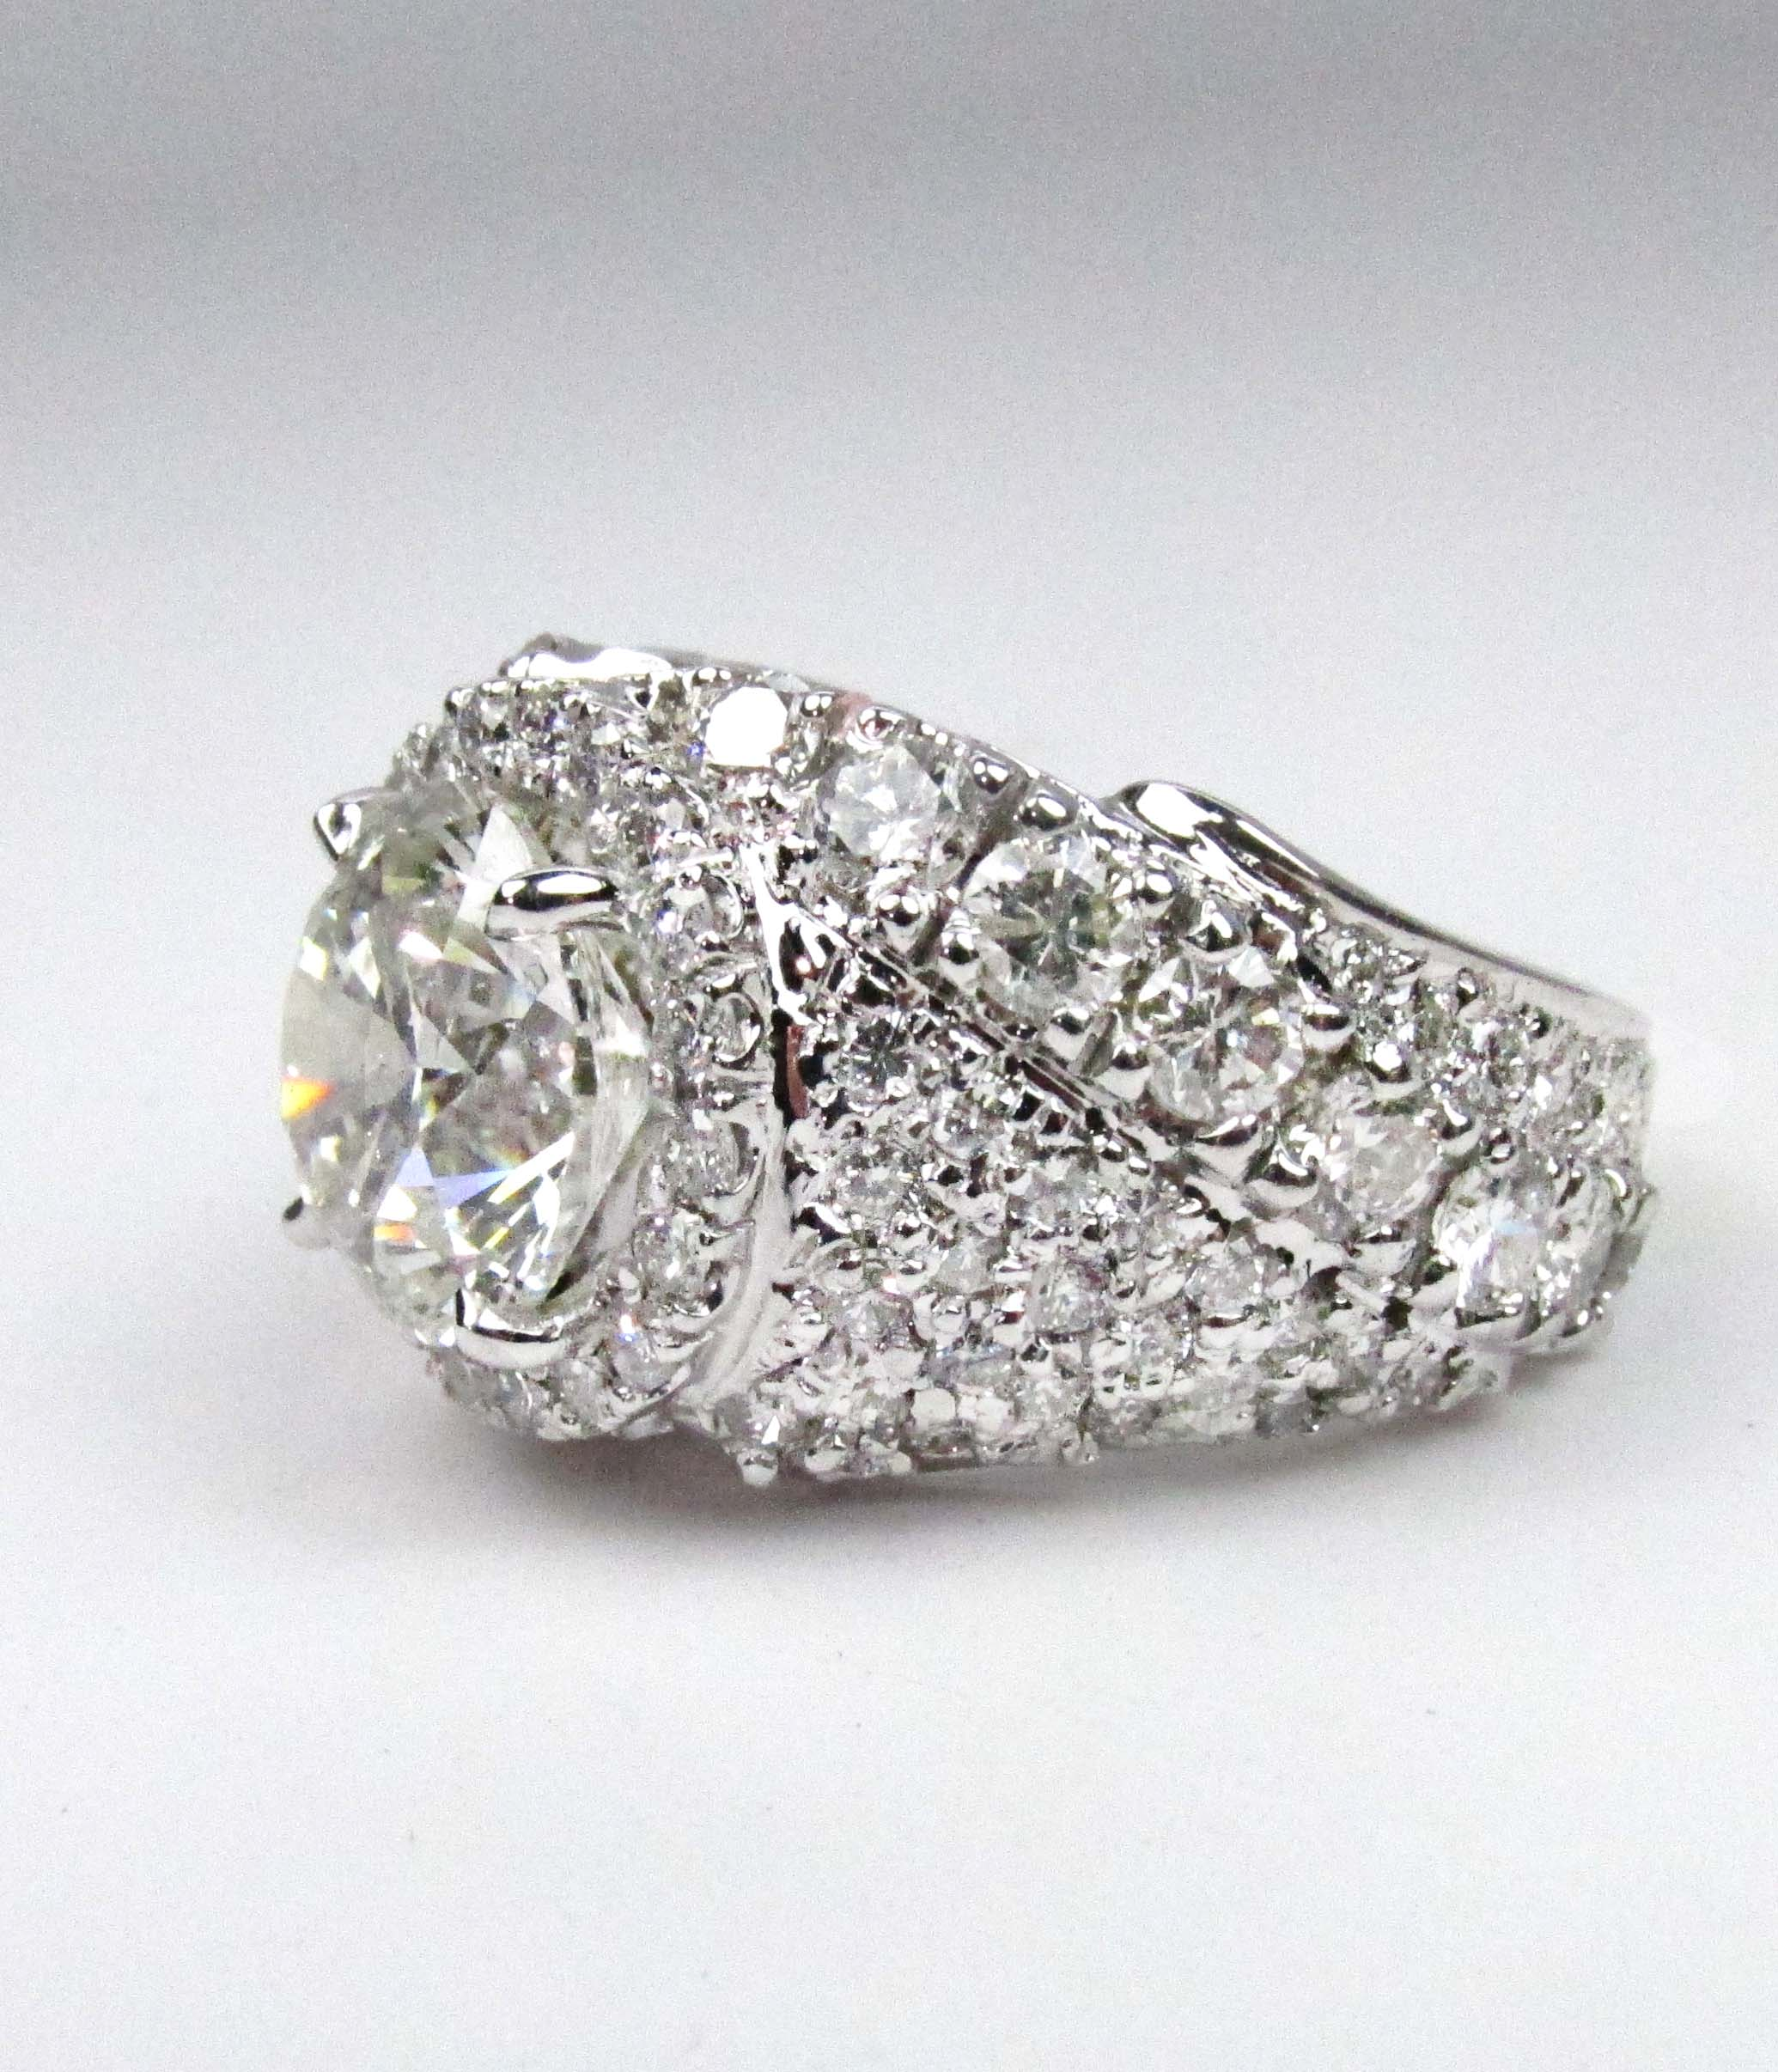 pave_engagement_ring_with_halo_redford_jewelers.jpg